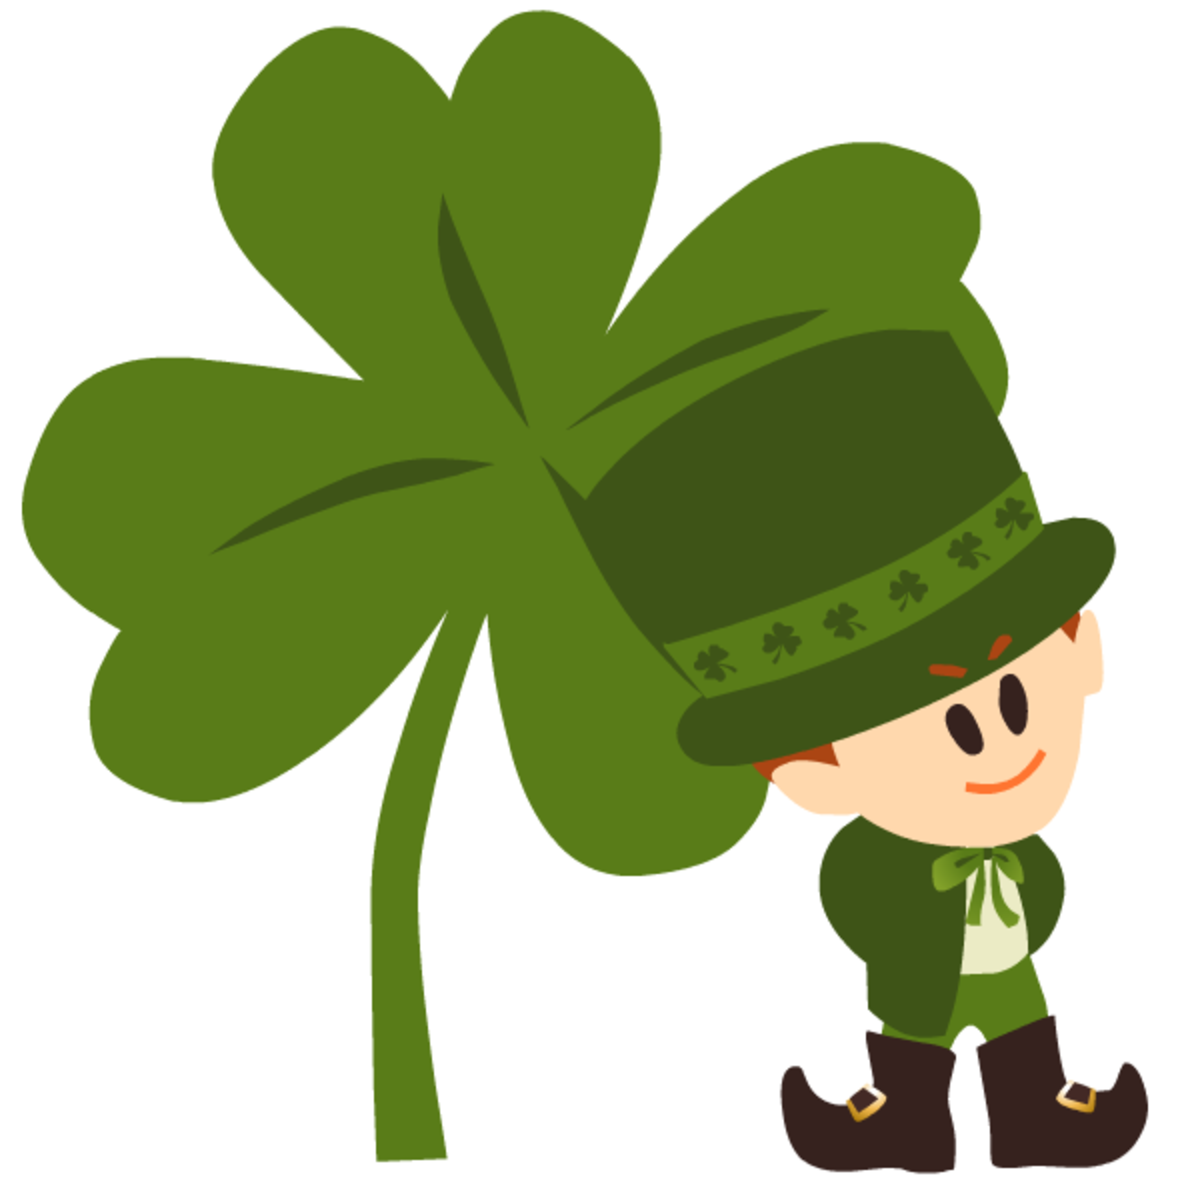 One green four-leaf clover with leprechaun